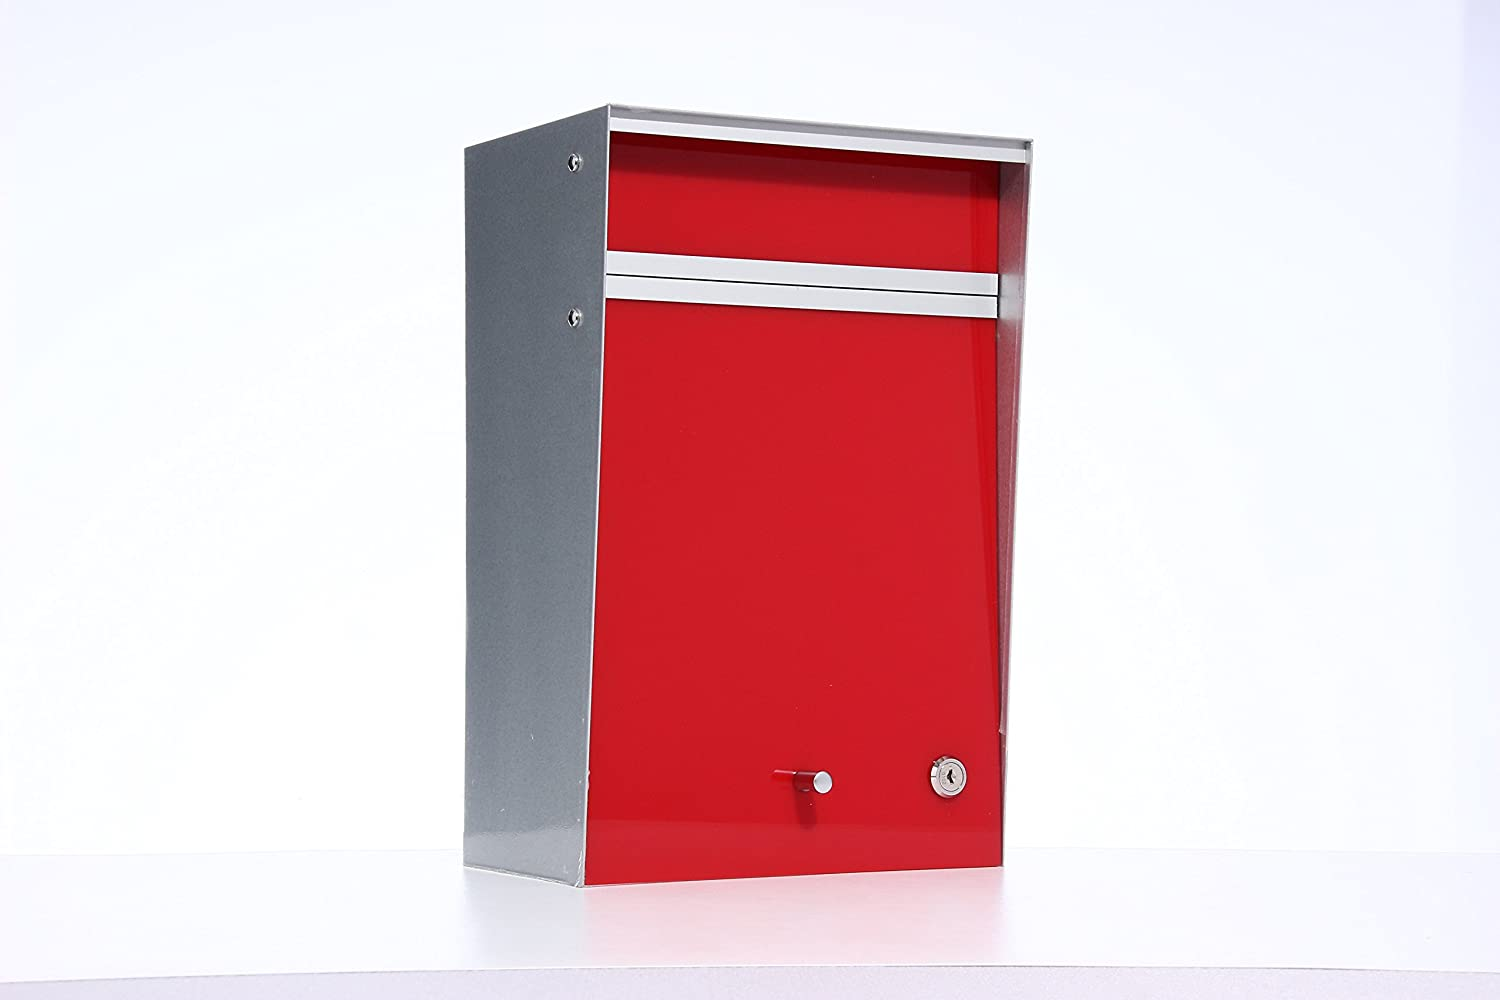 Box Design ポスト 郵便受け Wall Mounted  Red B00W6HVPZ4 28080 Red Red